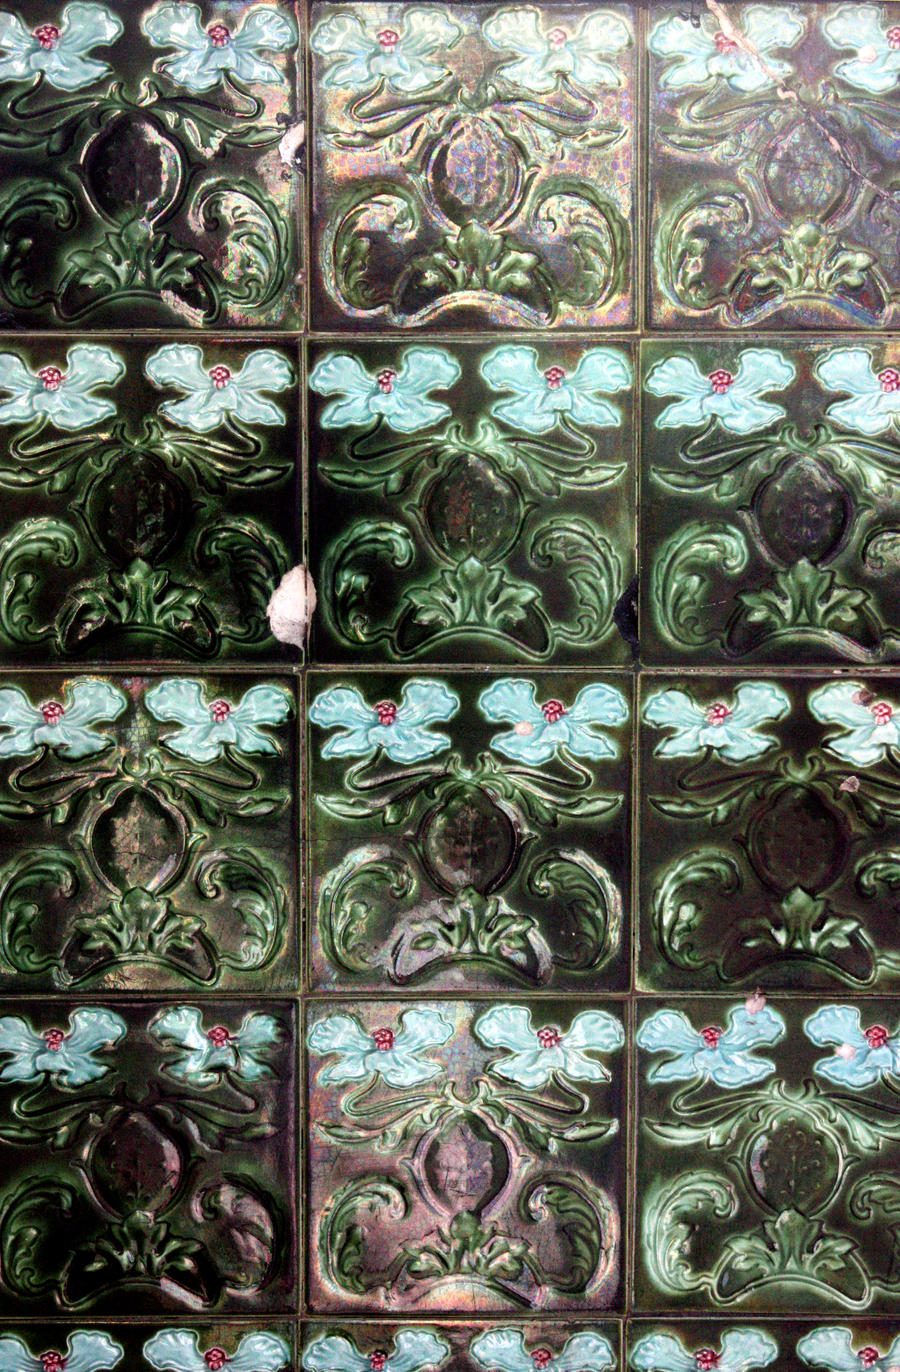 Arts and crafts movement tiles by aegiandyad on deviantart for Arts and crafts tiles